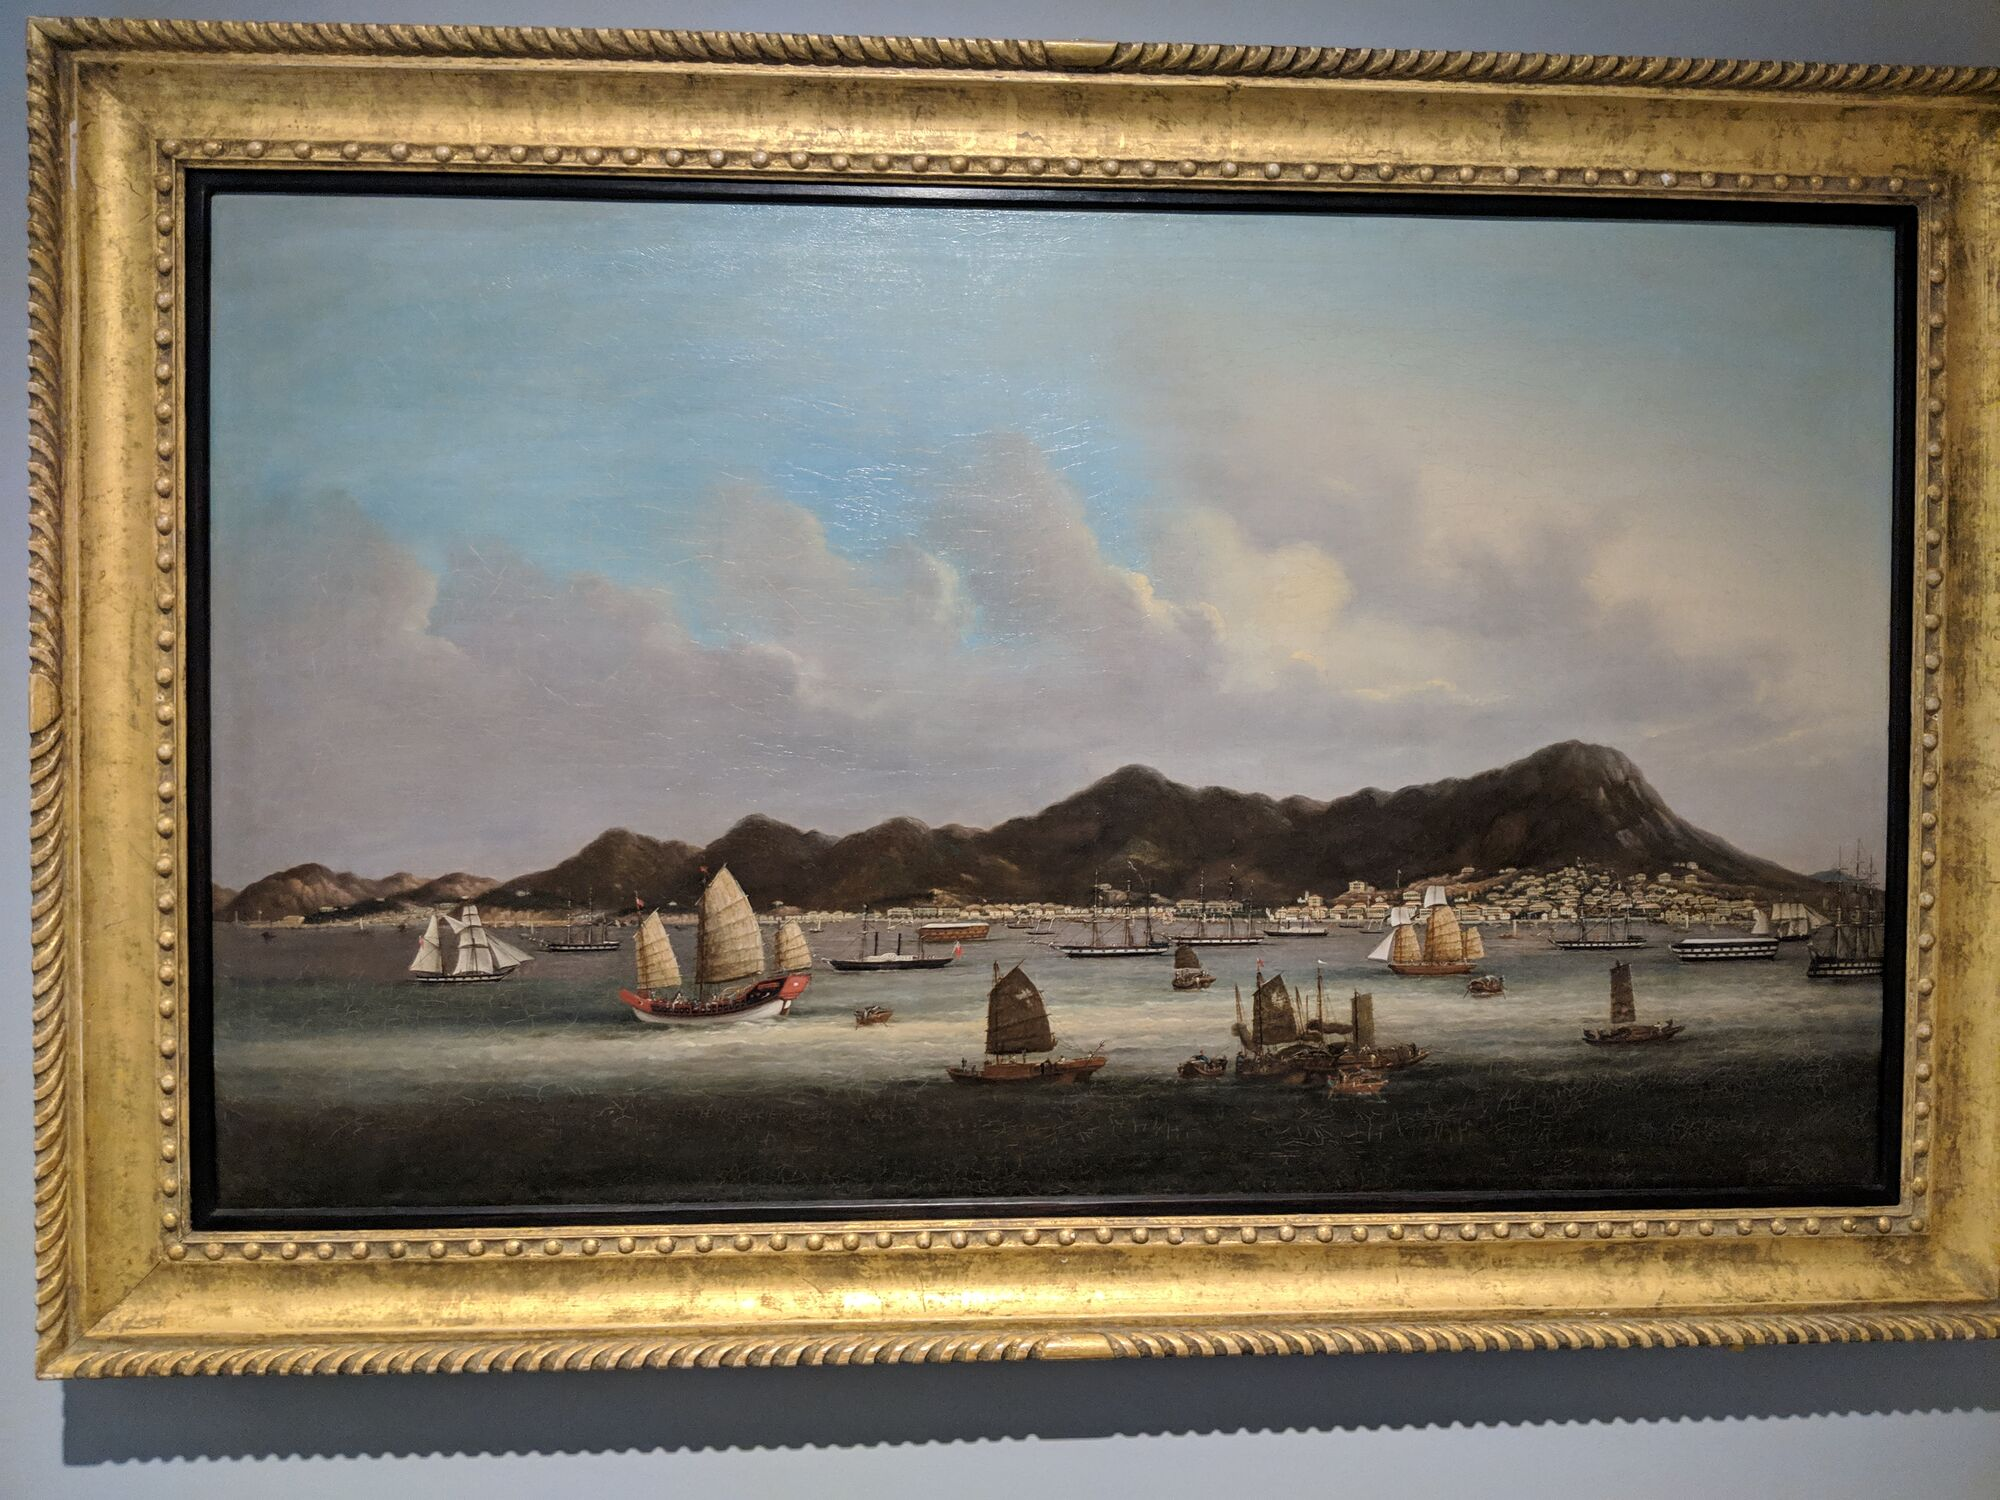 Hong Kong Island from the harbour, late 1850s, Oil on Canvas, includes several landmarks, such as St John's Cathedral (the white building with bell tower between the two mountains on the right) and Government House (1855) to the right and uphill.